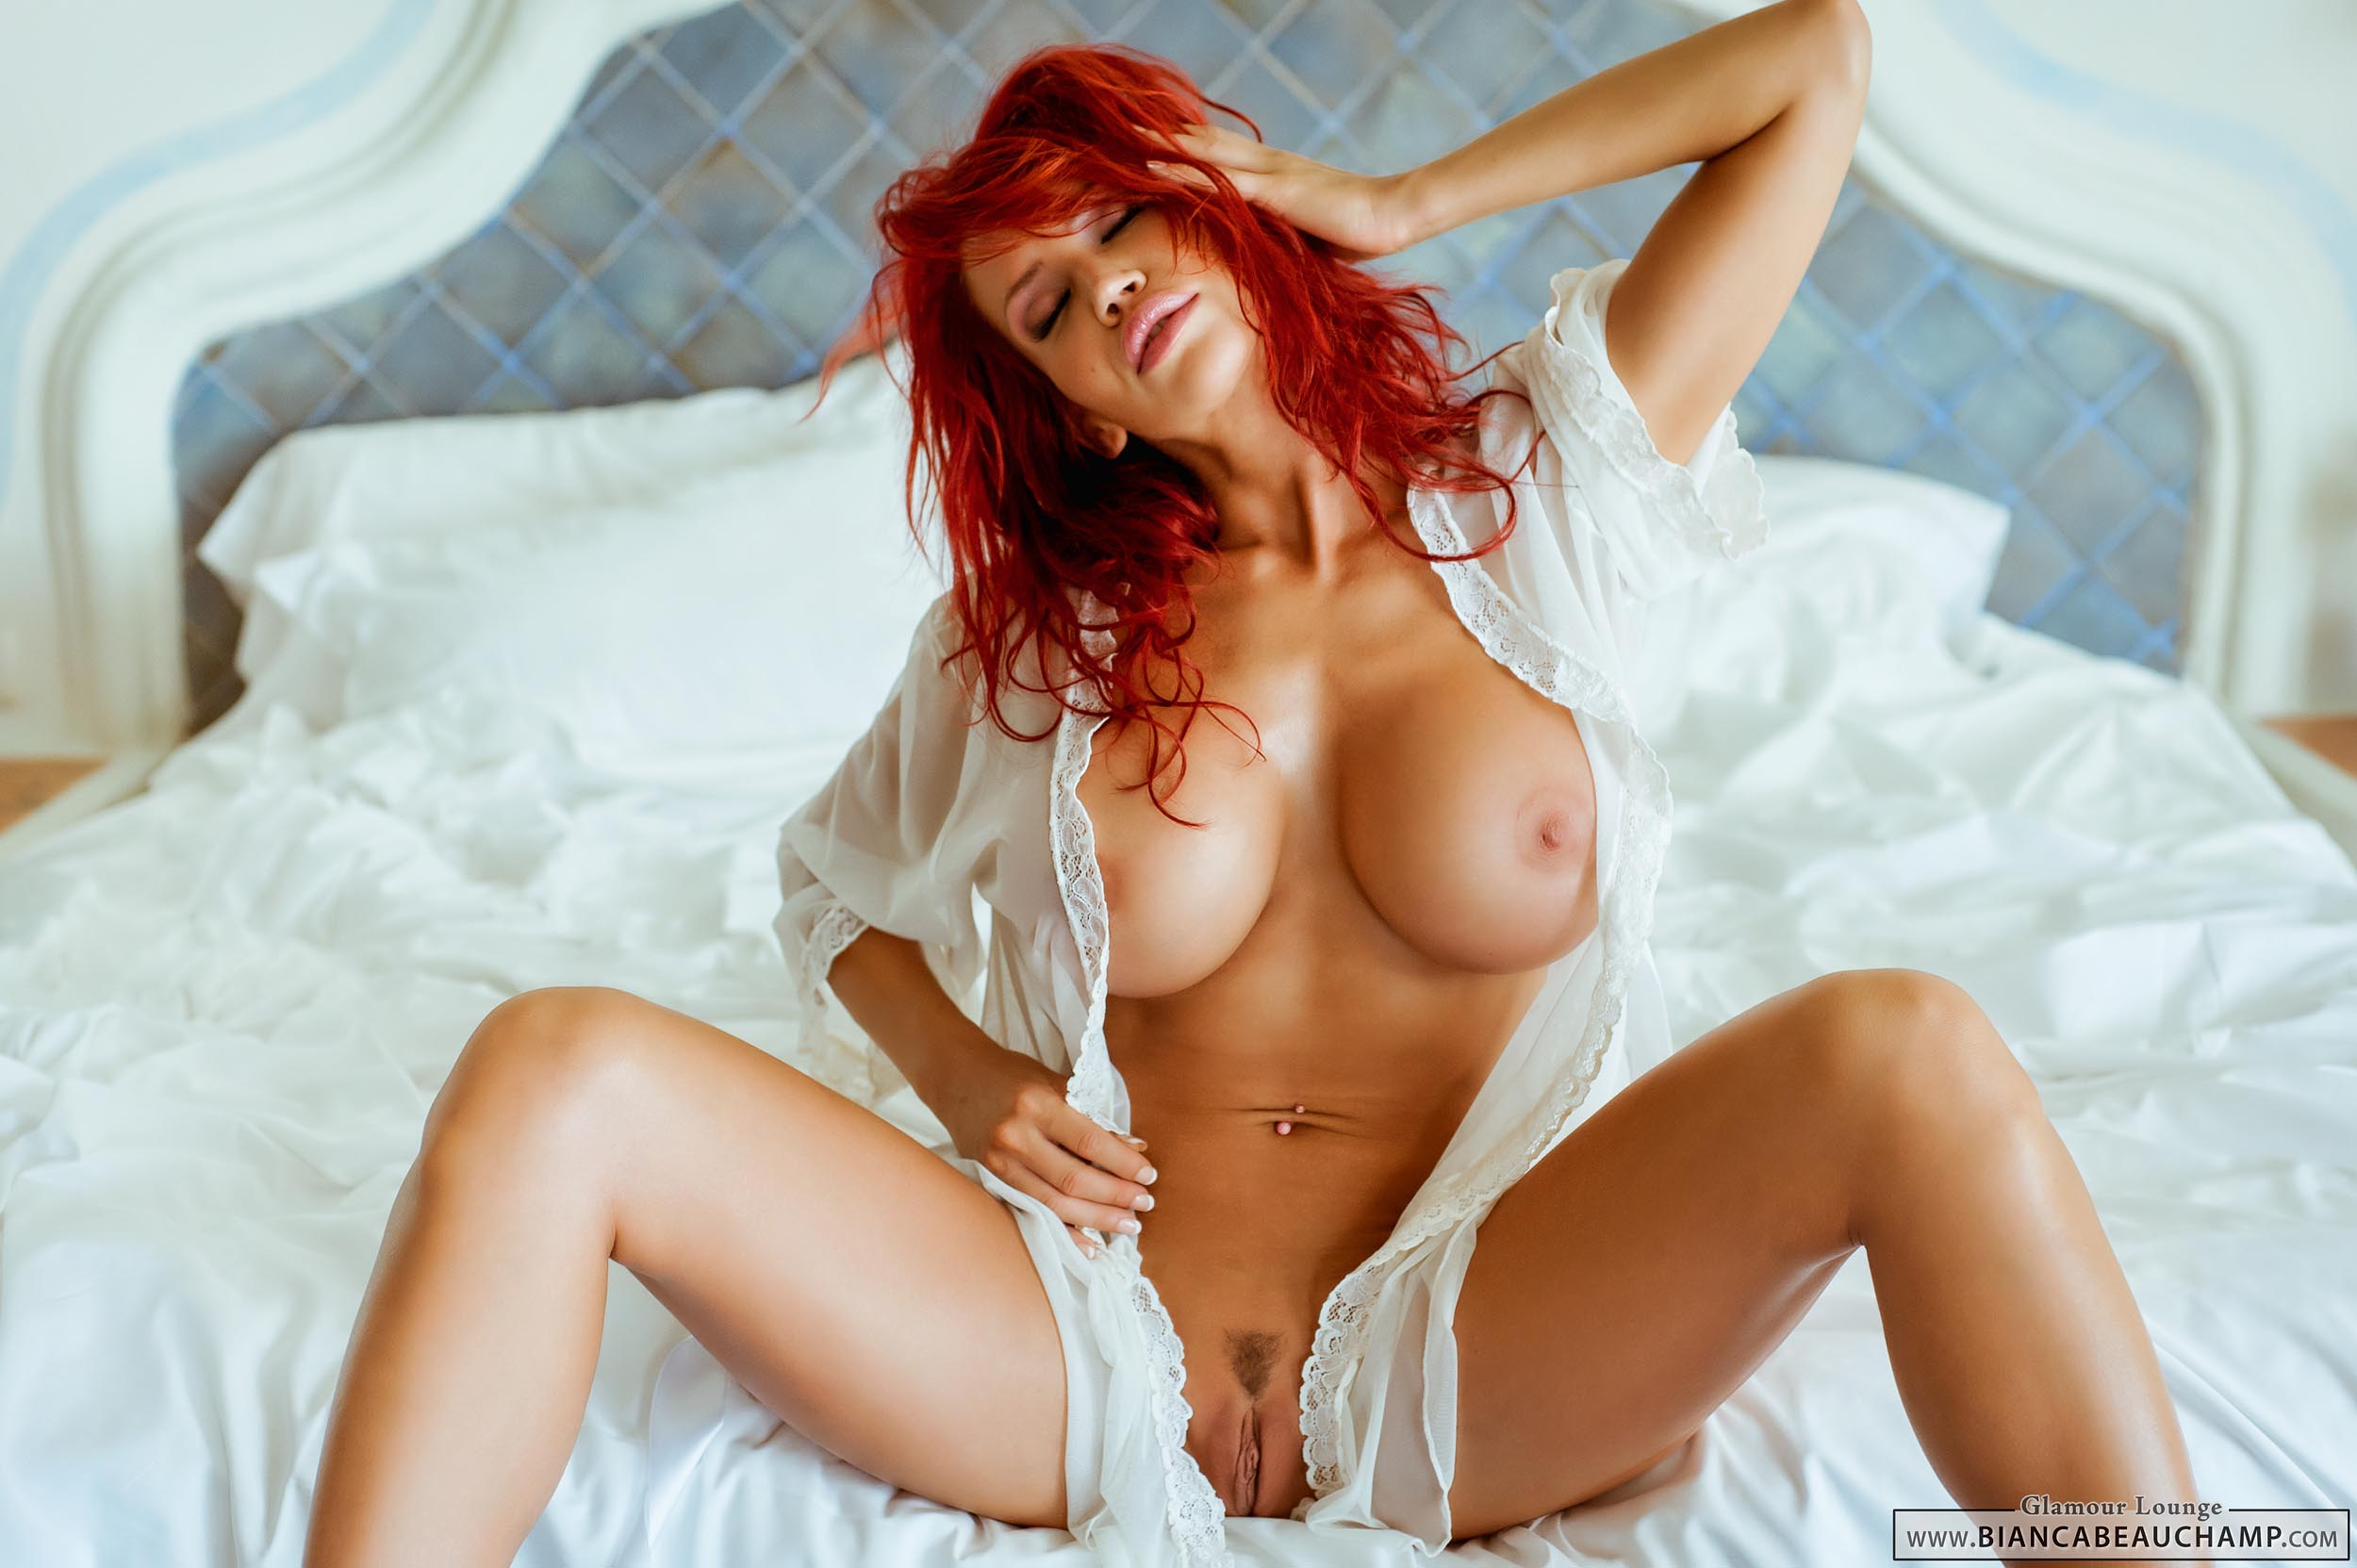 Need naked picture redhead love you!